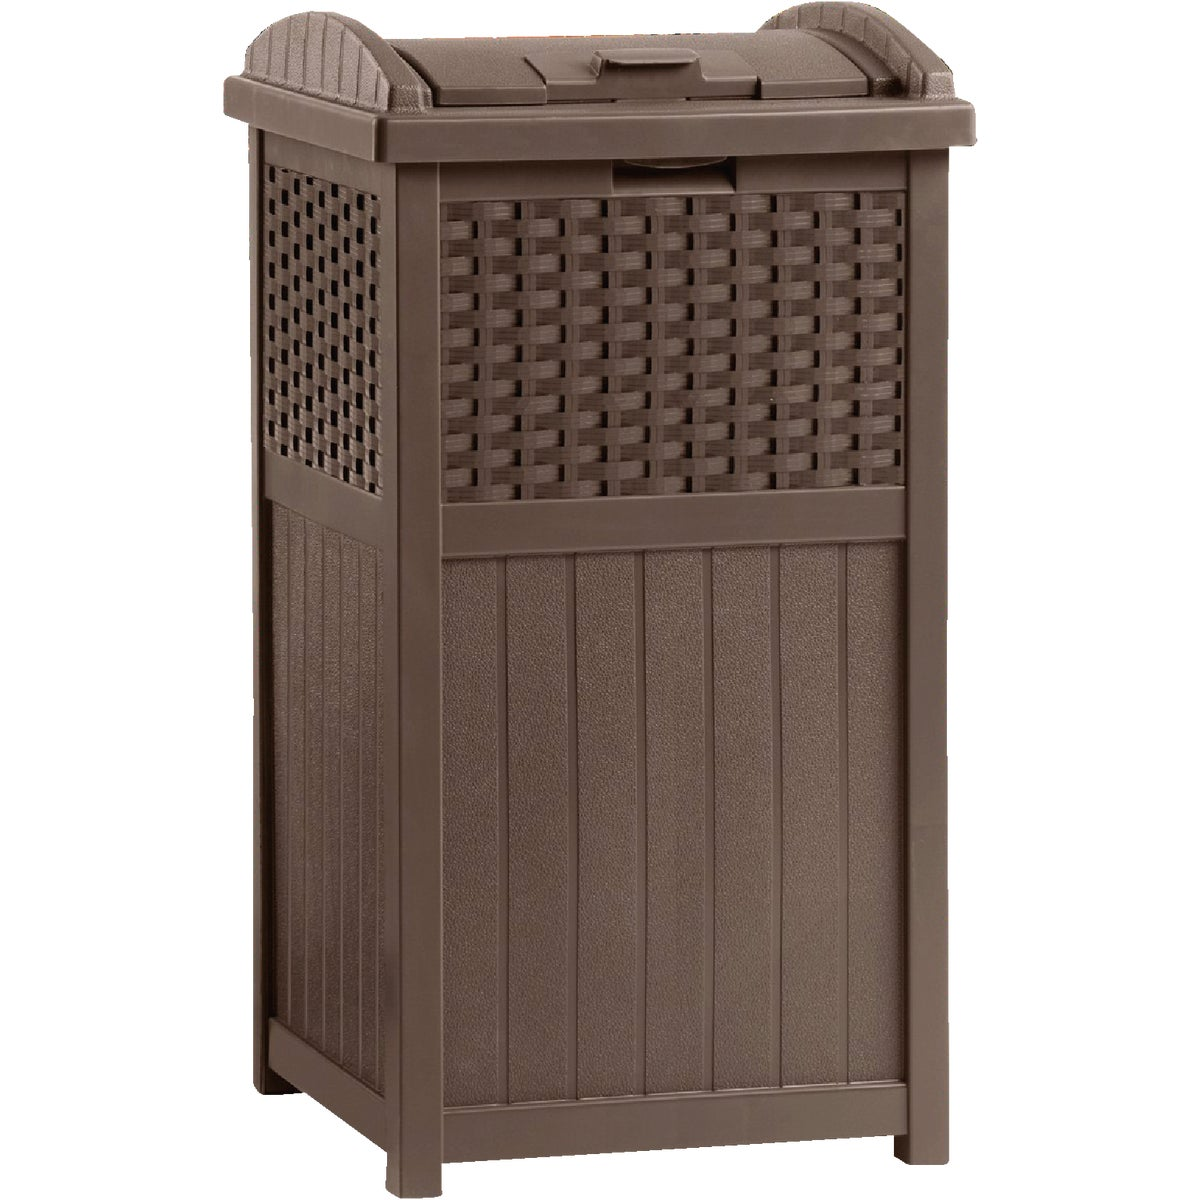 RESIN WICKER TRASH CAN - GHW1732 by Suncast Corporation